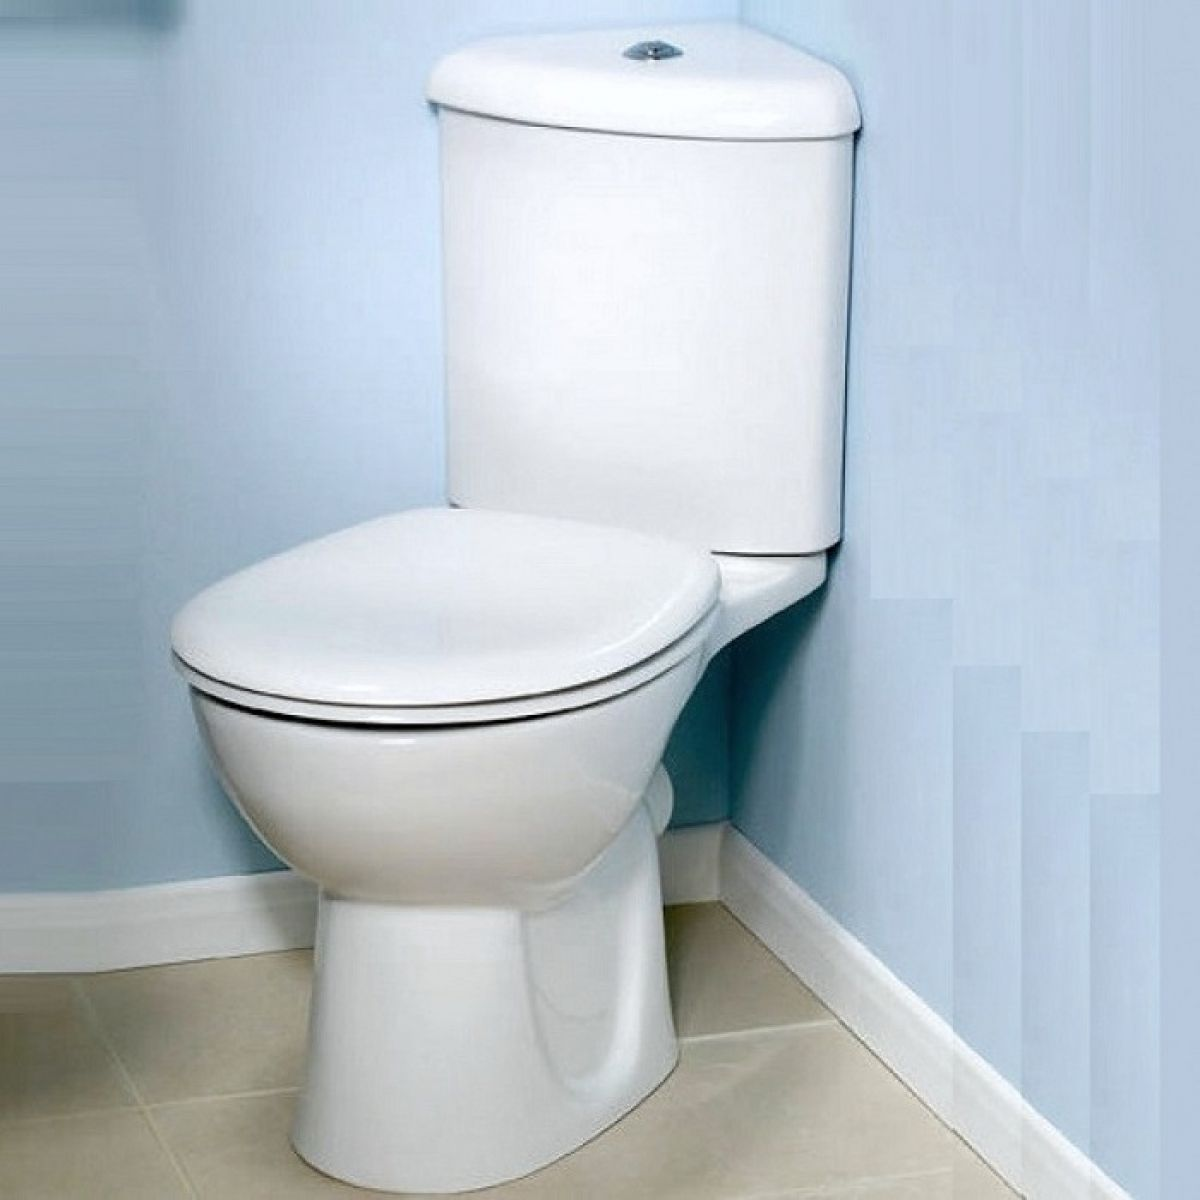 image example of a small cloakroom toilet